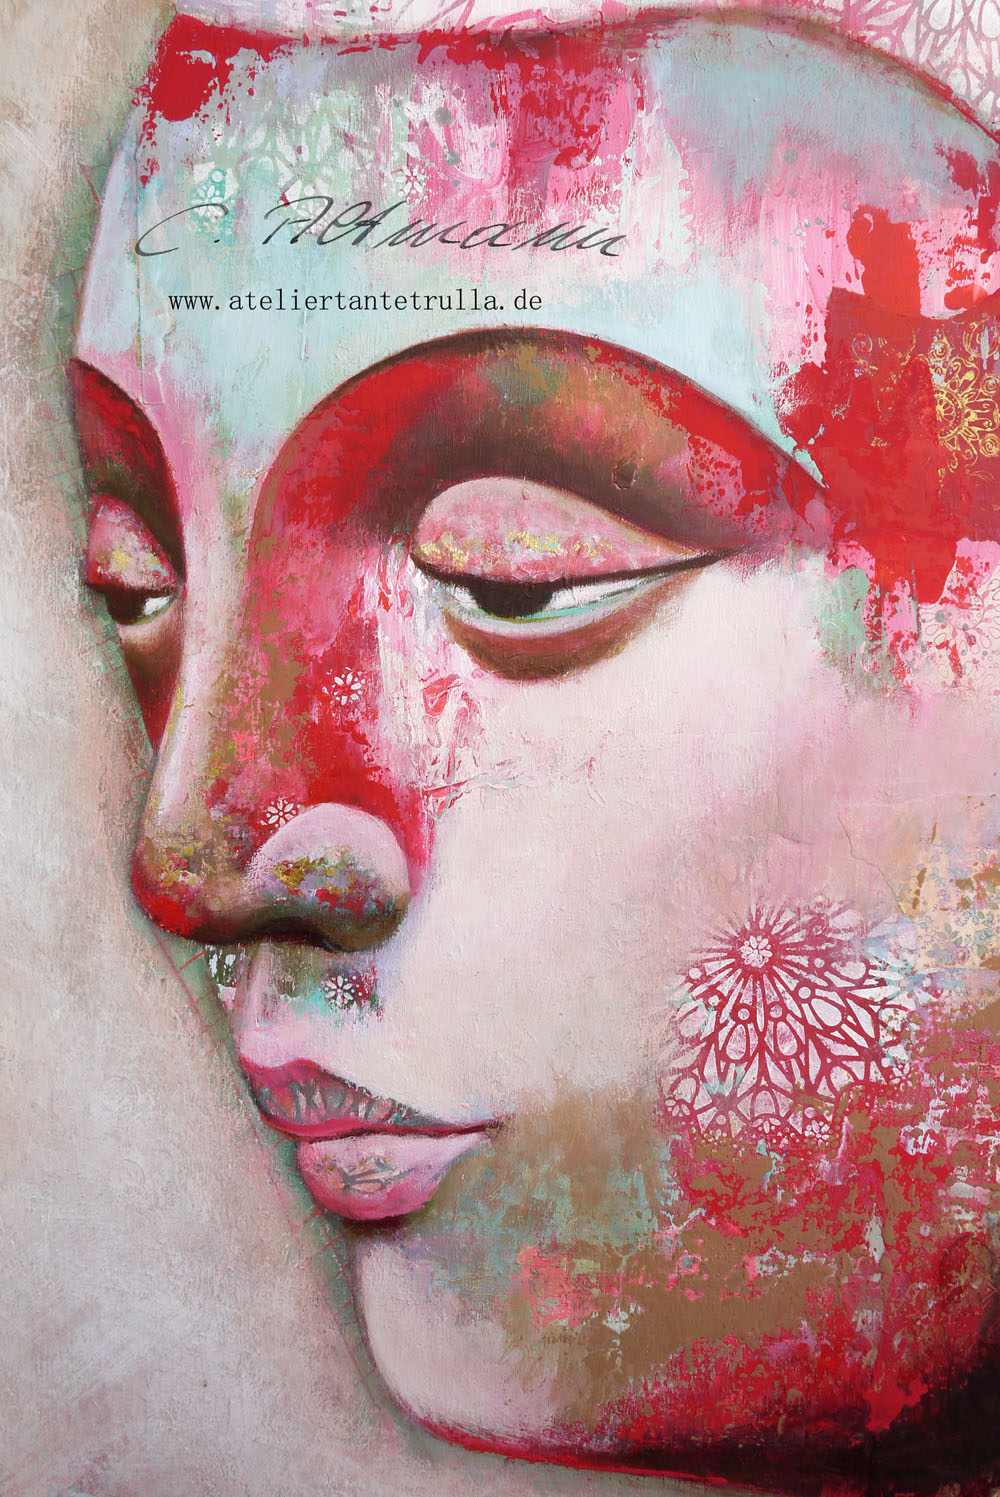 buddha painting by Conni Altmann, www.ateliertantetrulla.de